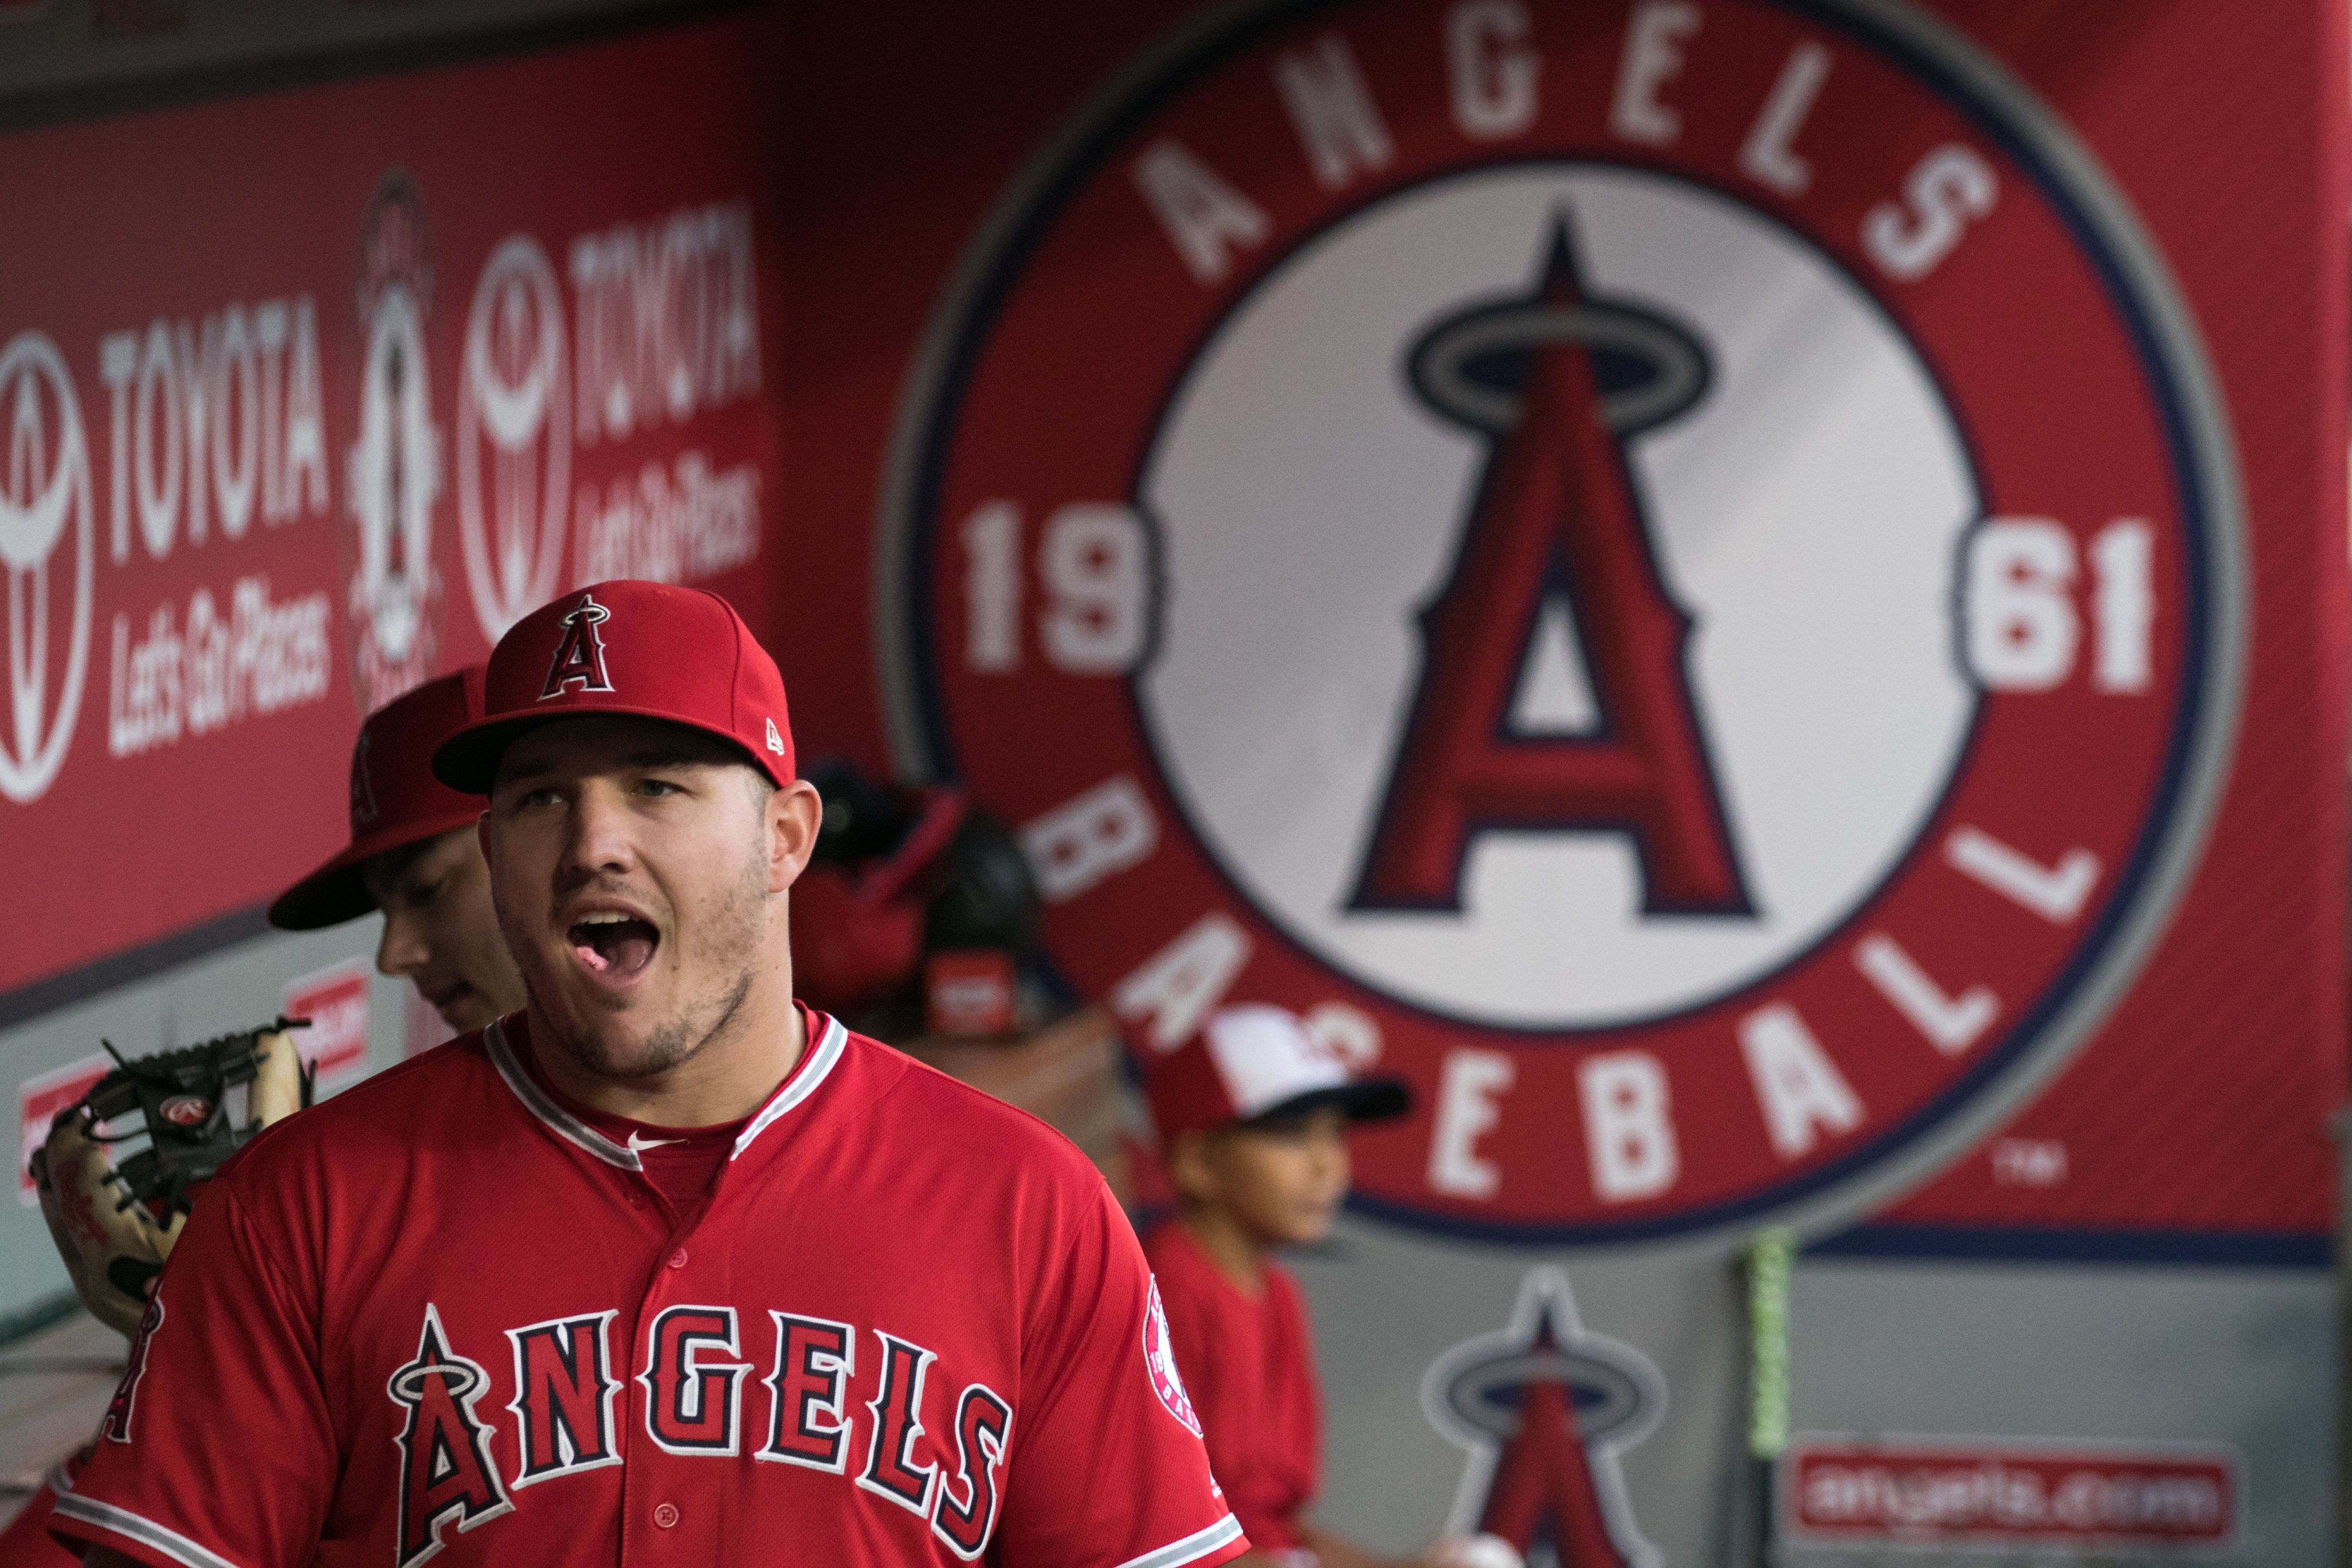 Trout is set to catch the biggest prize in sport. Image: PA Images